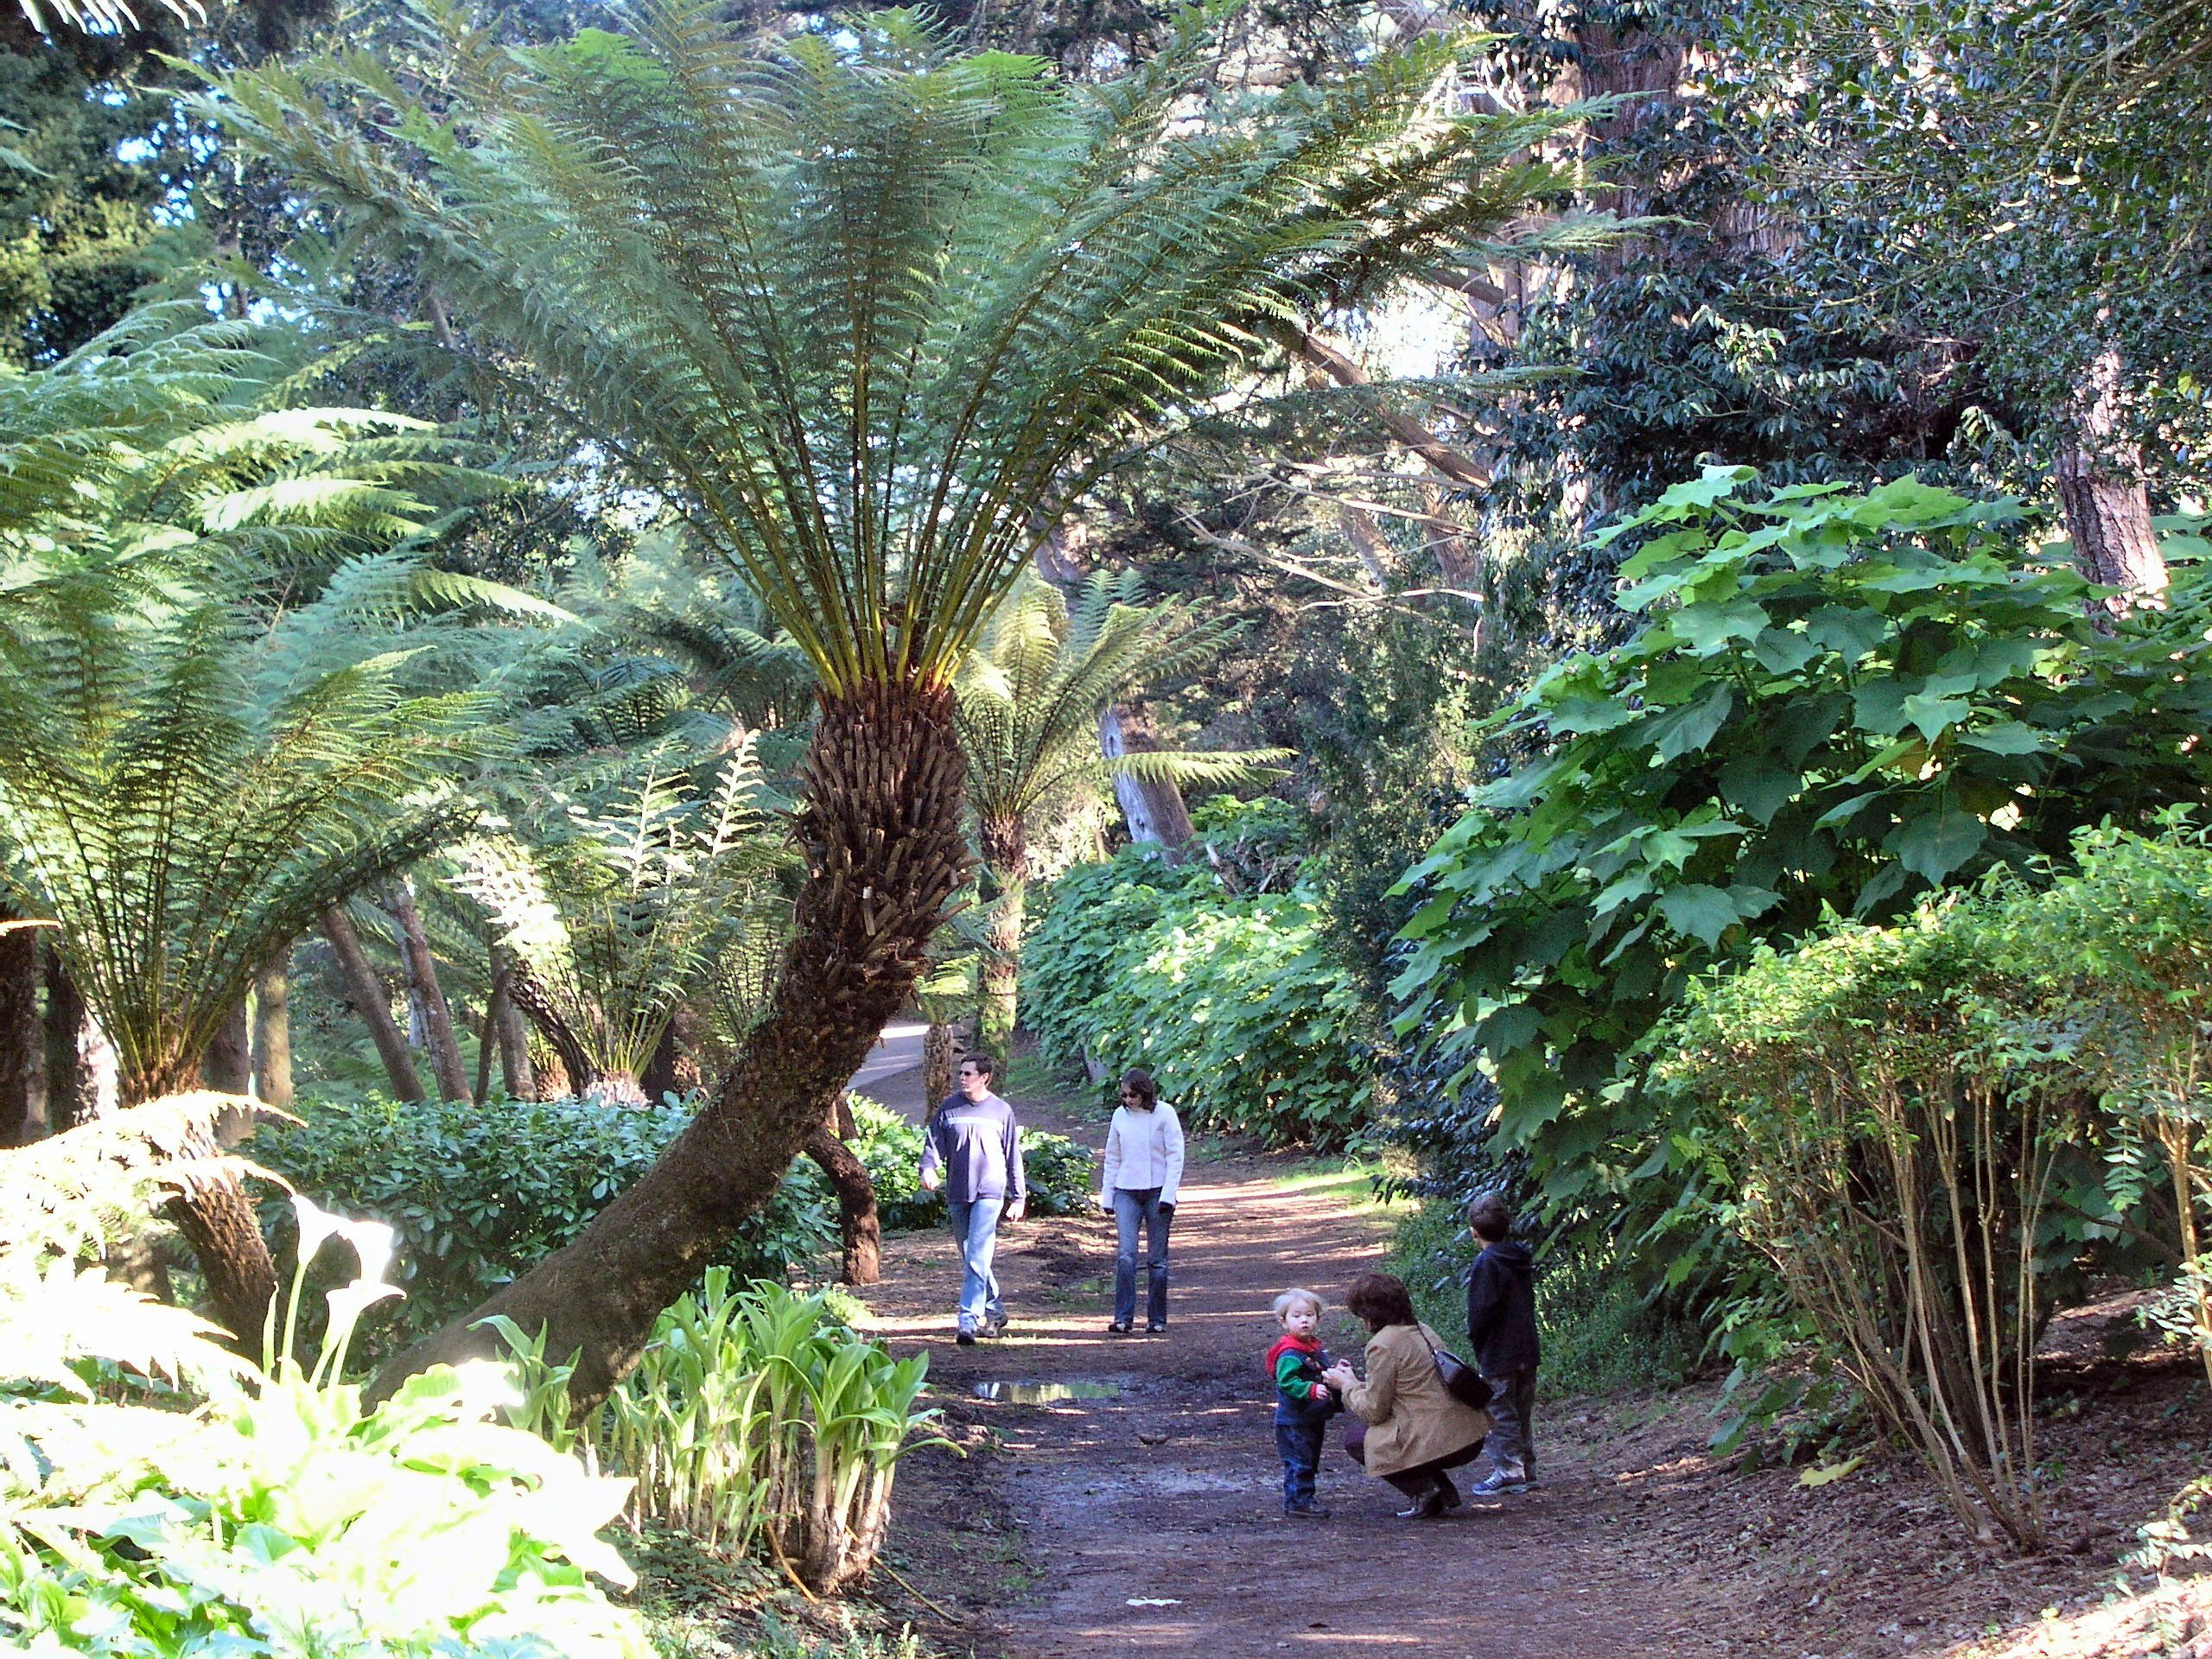 The Botanical Gardens In Golden Gate Park Are Wonderful For A Stroll. Due  To Our Temperate Climate, There Are Plants From A Wide Range Of Locationsu2026